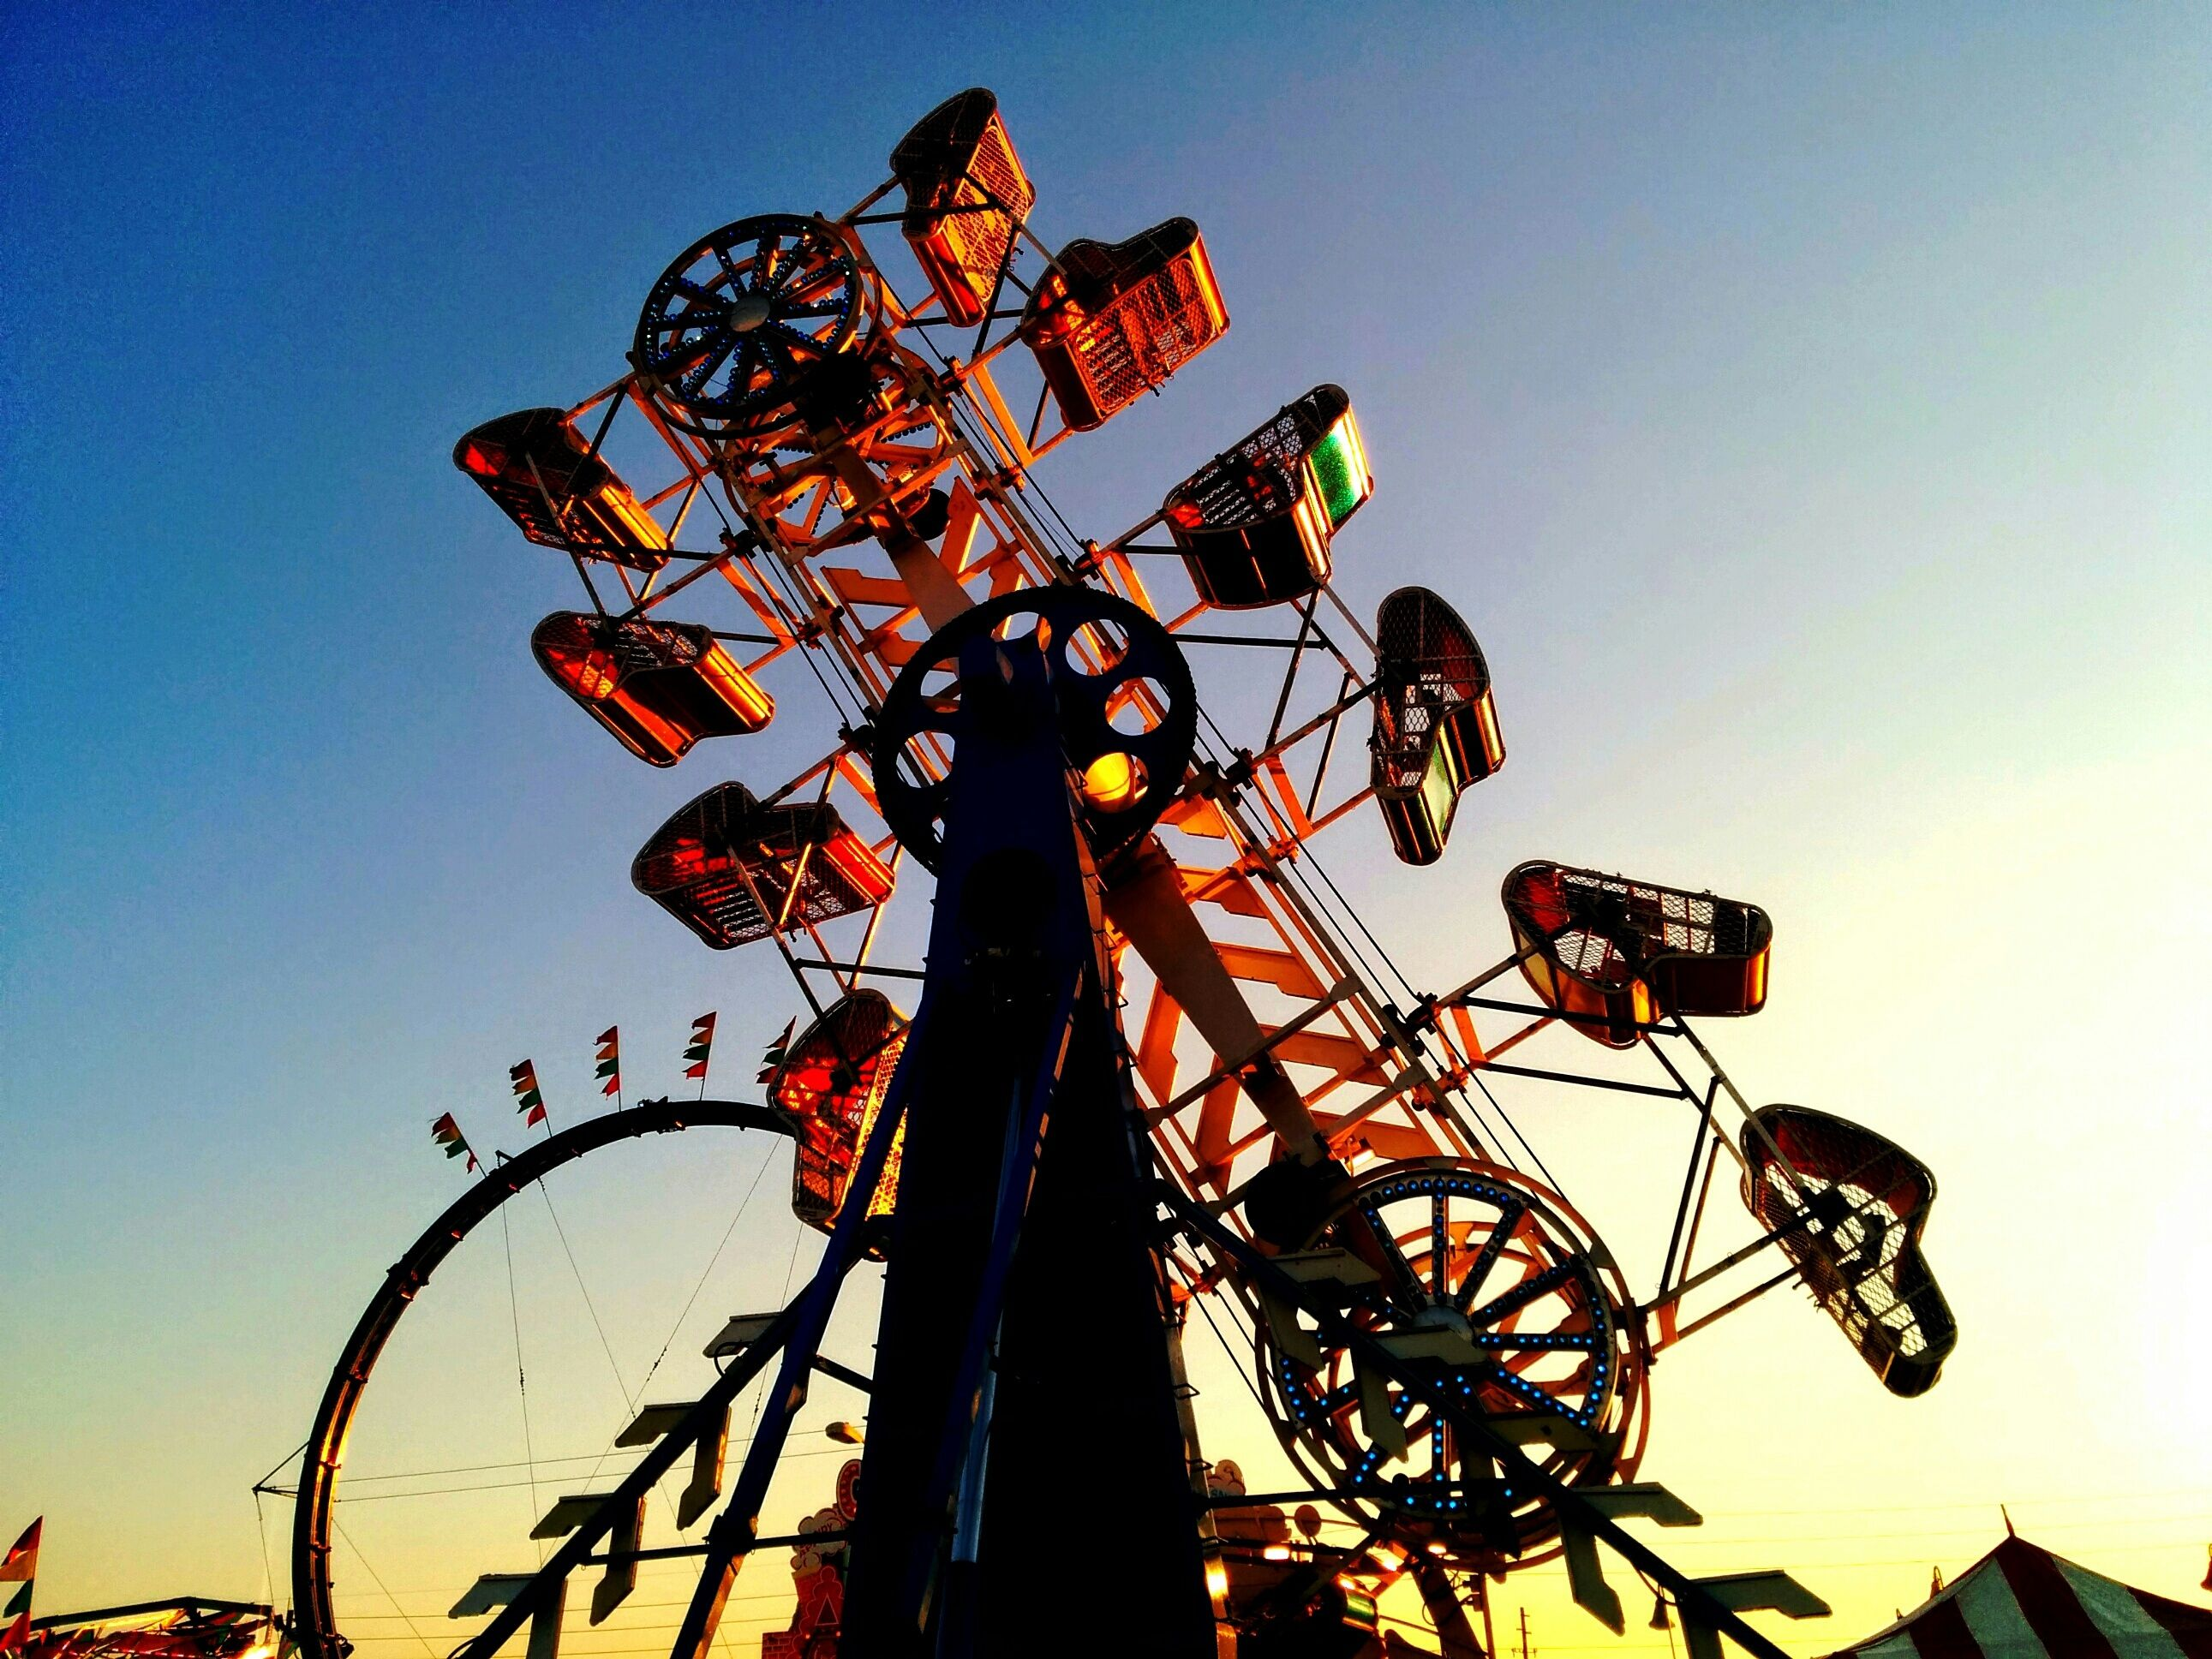 Florida s Fair Dates and Locations